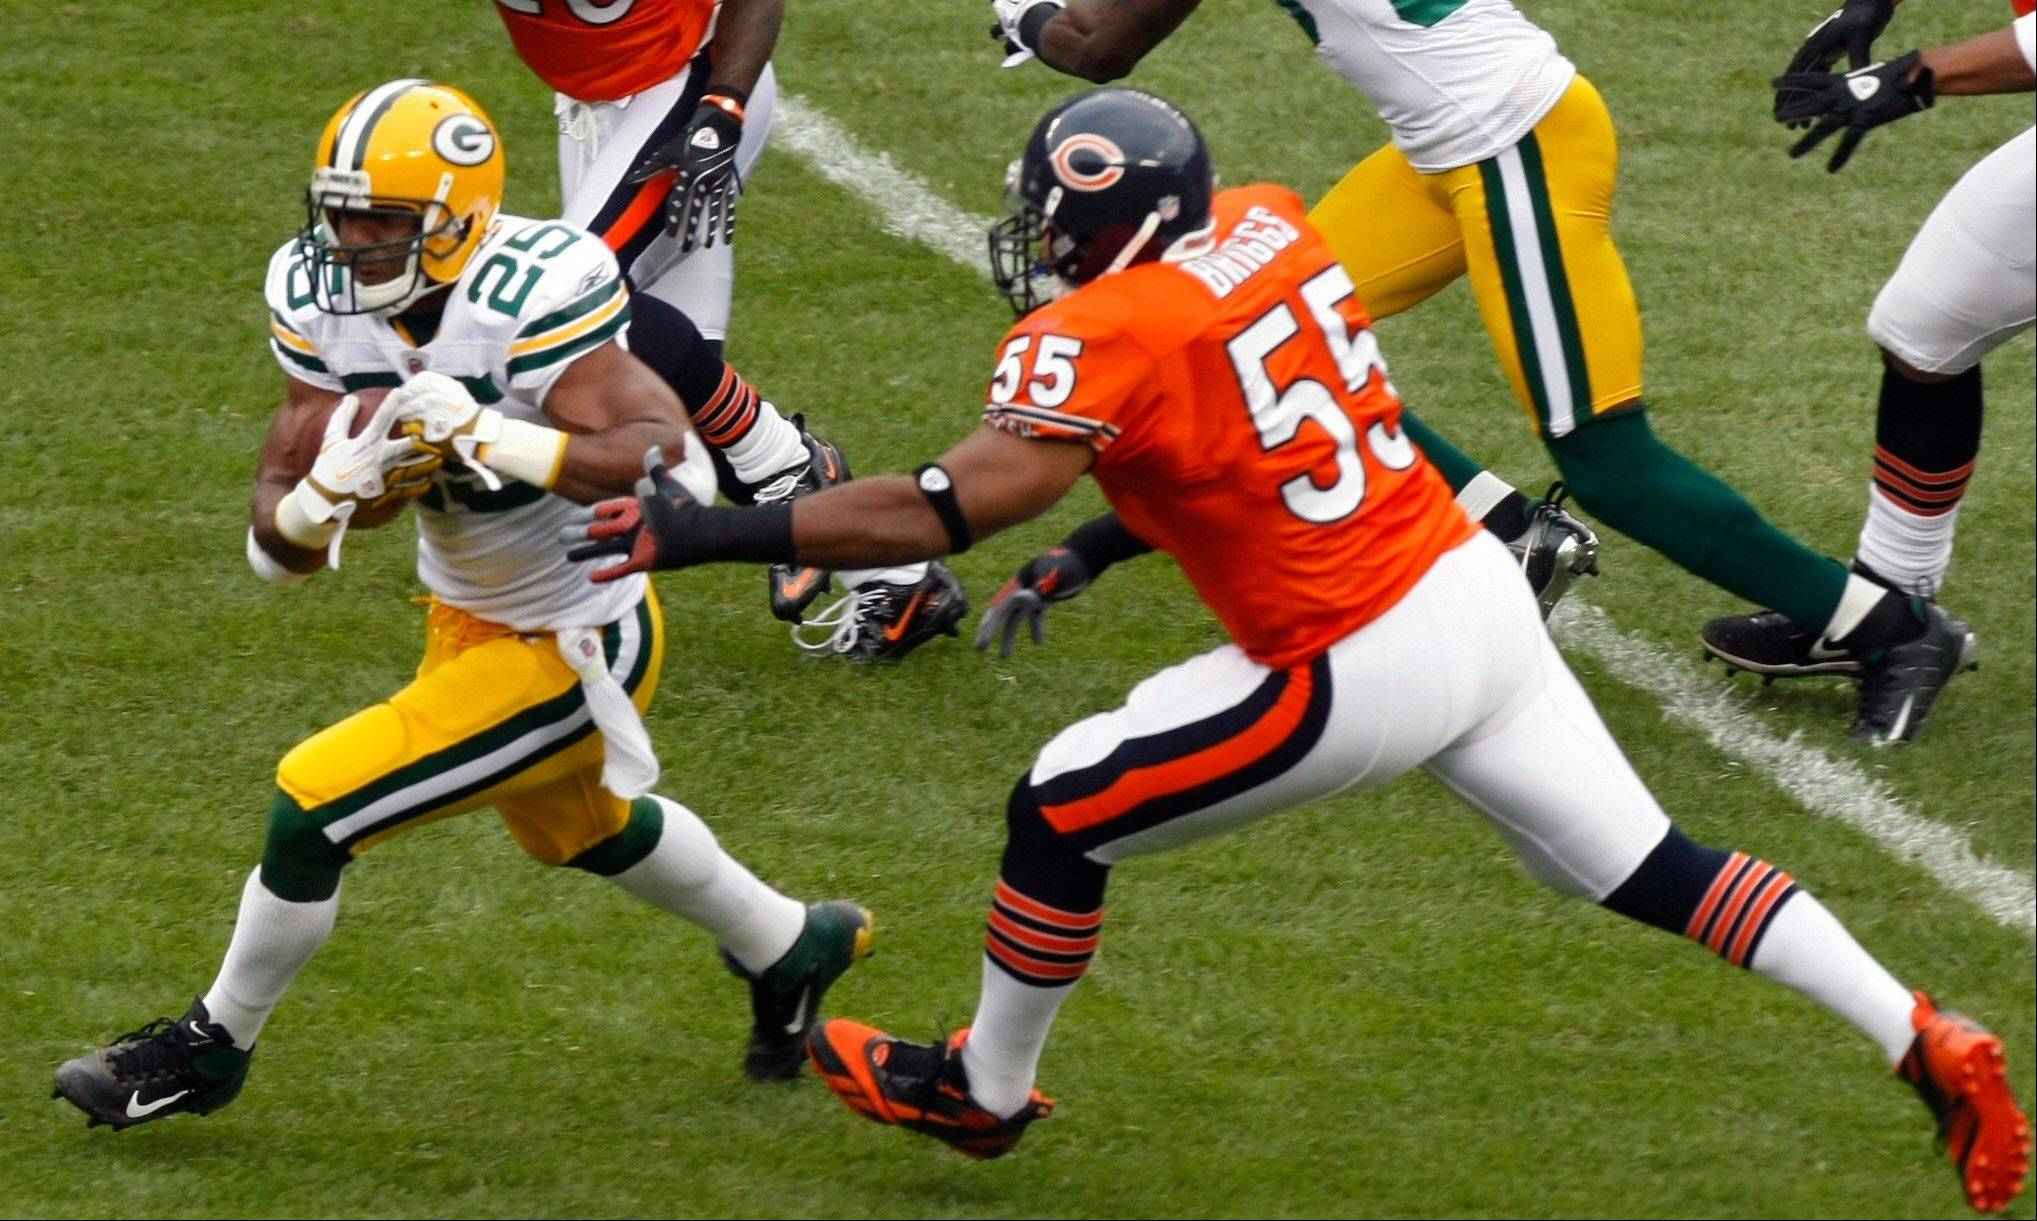 Lance Briggs chases down Packers running back Ryan Grant last Sunday at Soldier Field.